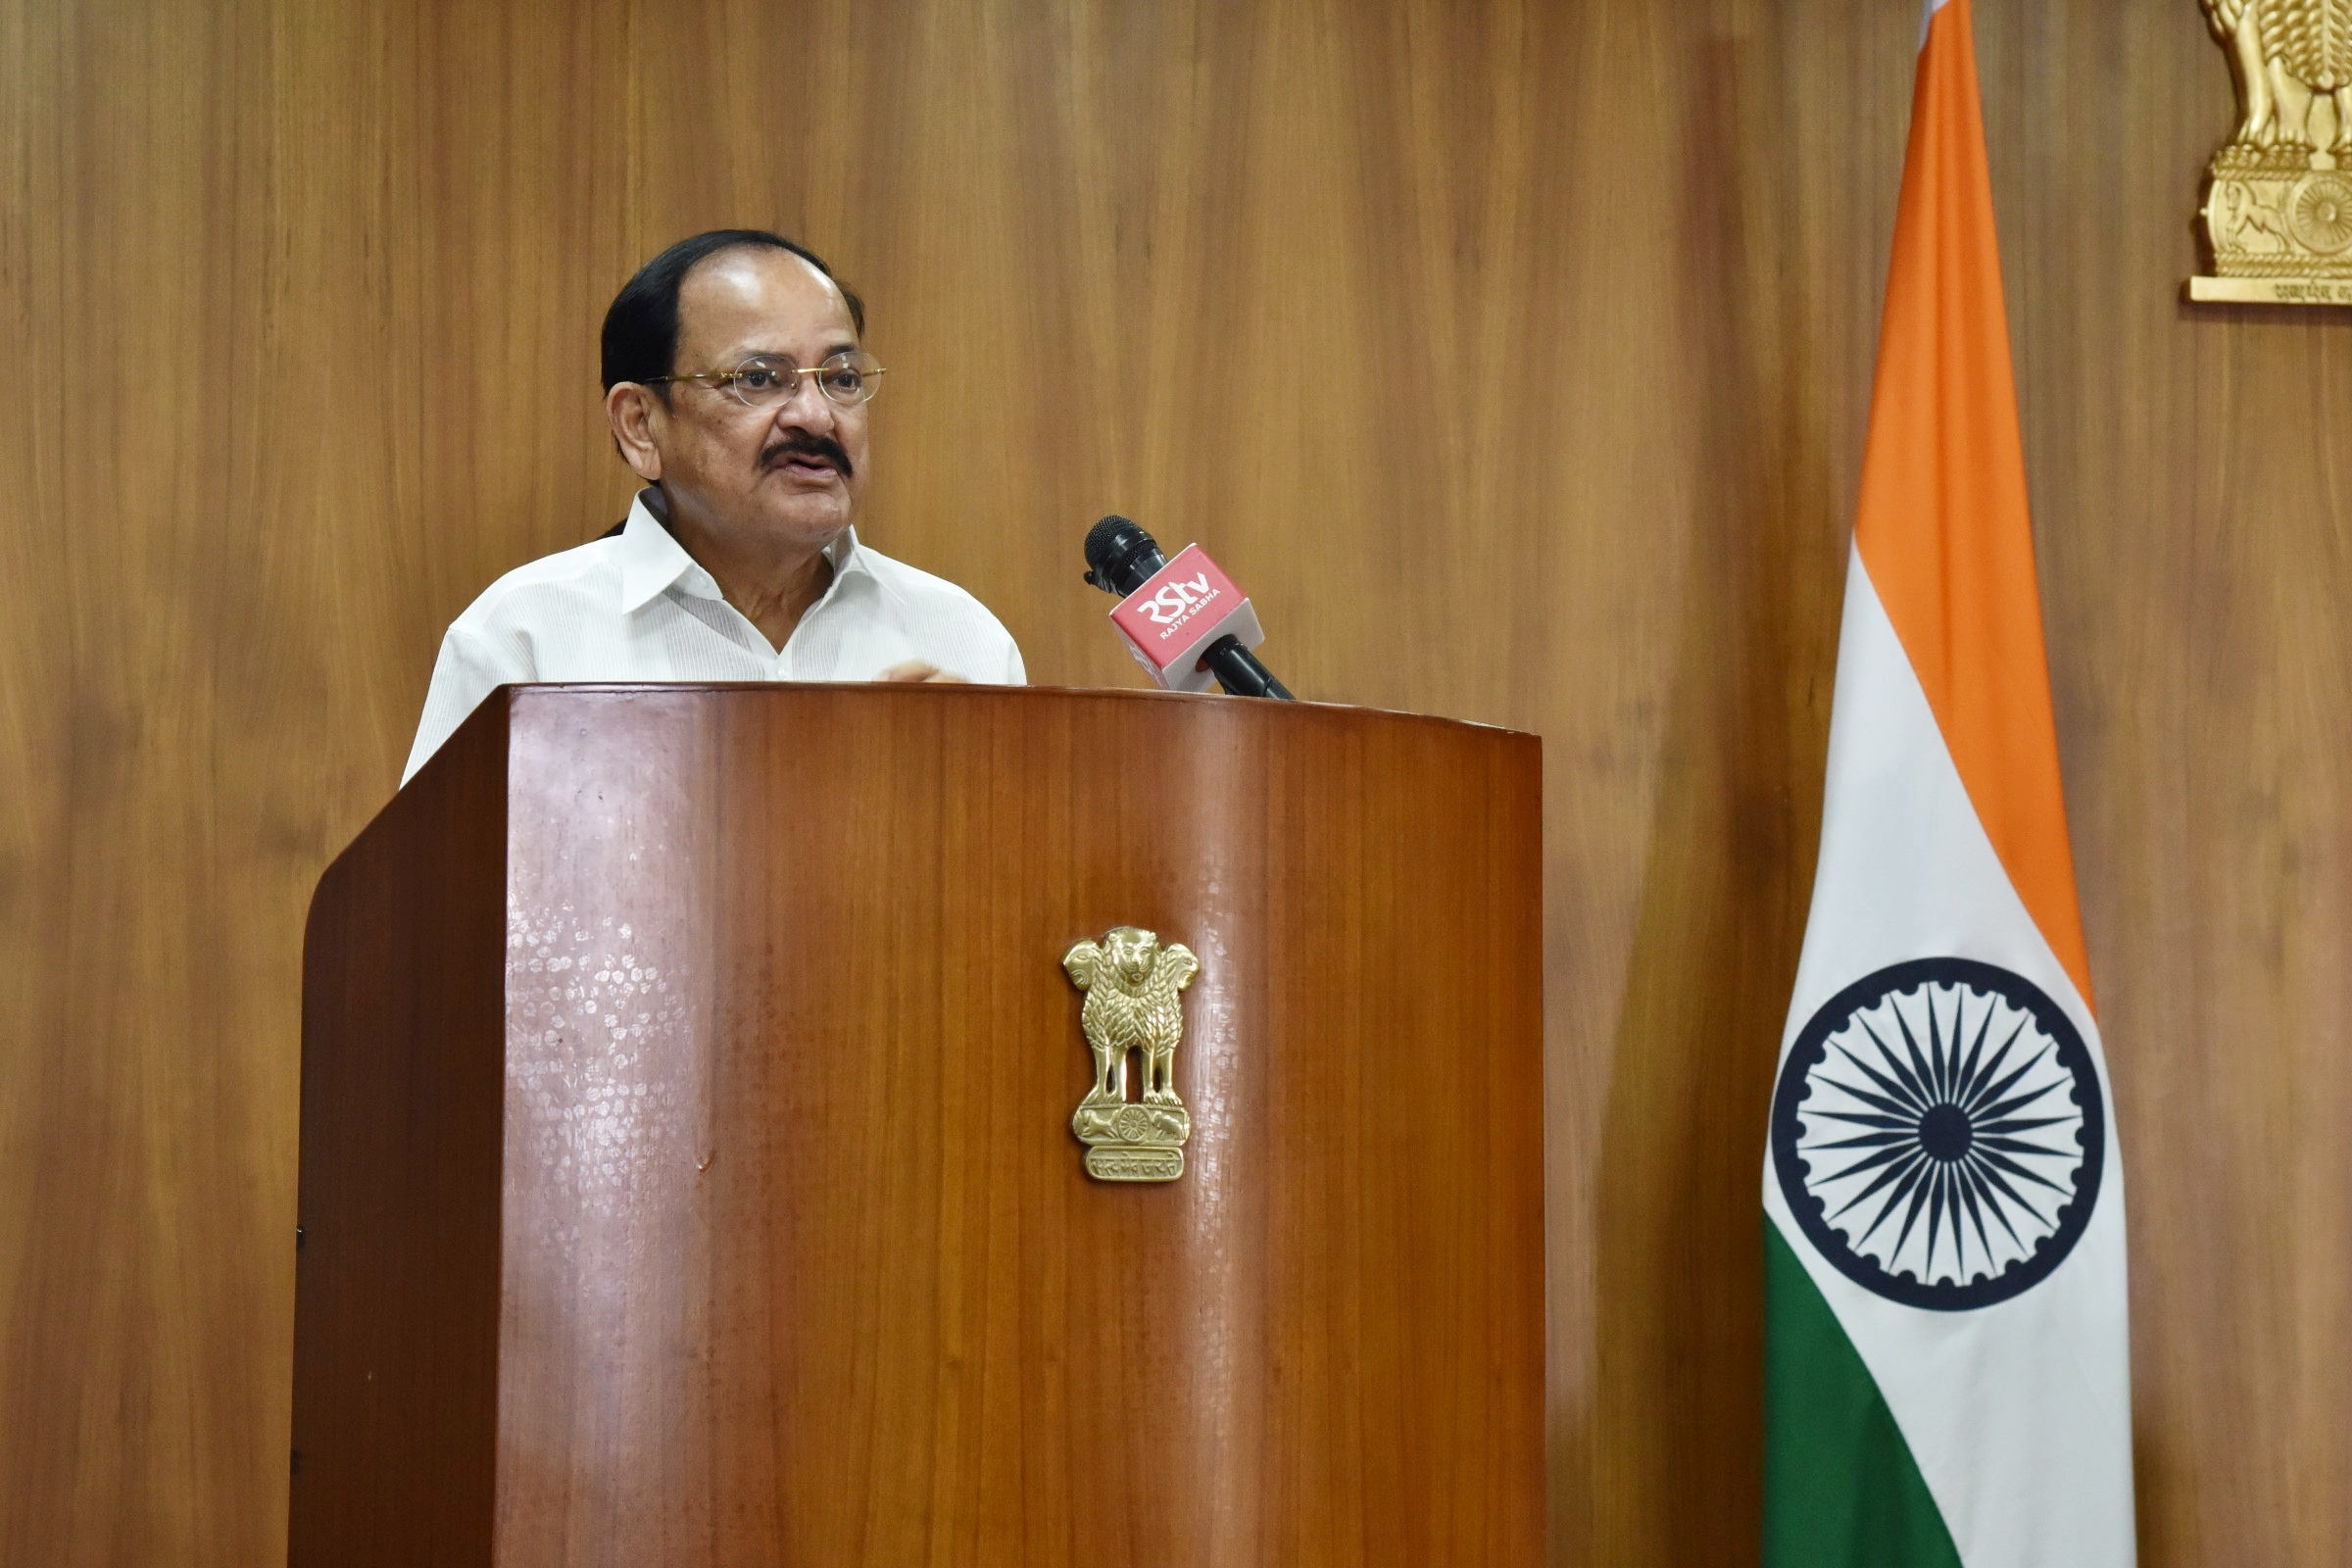 The Vice President, Shri M. Venkaiah Naidu delivering his address virtually, at the inauguration of the online Global Ayurveda Summit, from New Delhi on 15 September 2020.